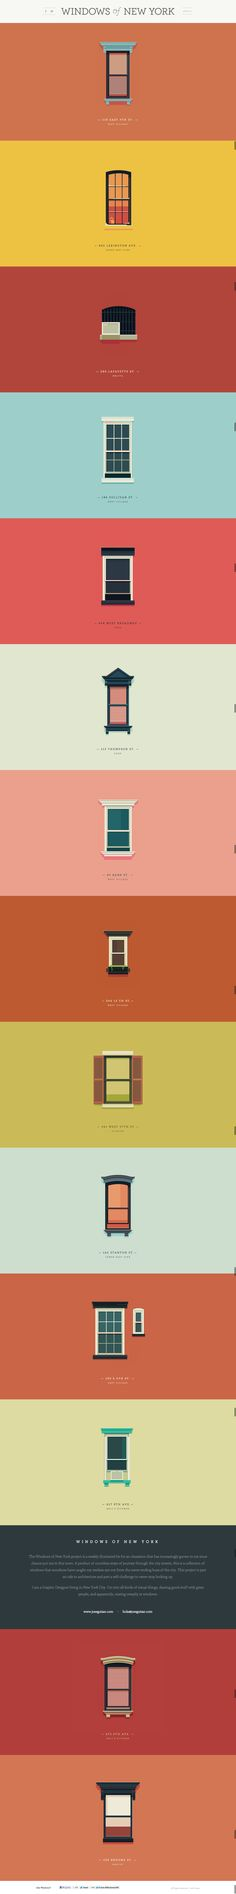 Great set of illustrations of various windows styles scatered about in NYC #webdesign